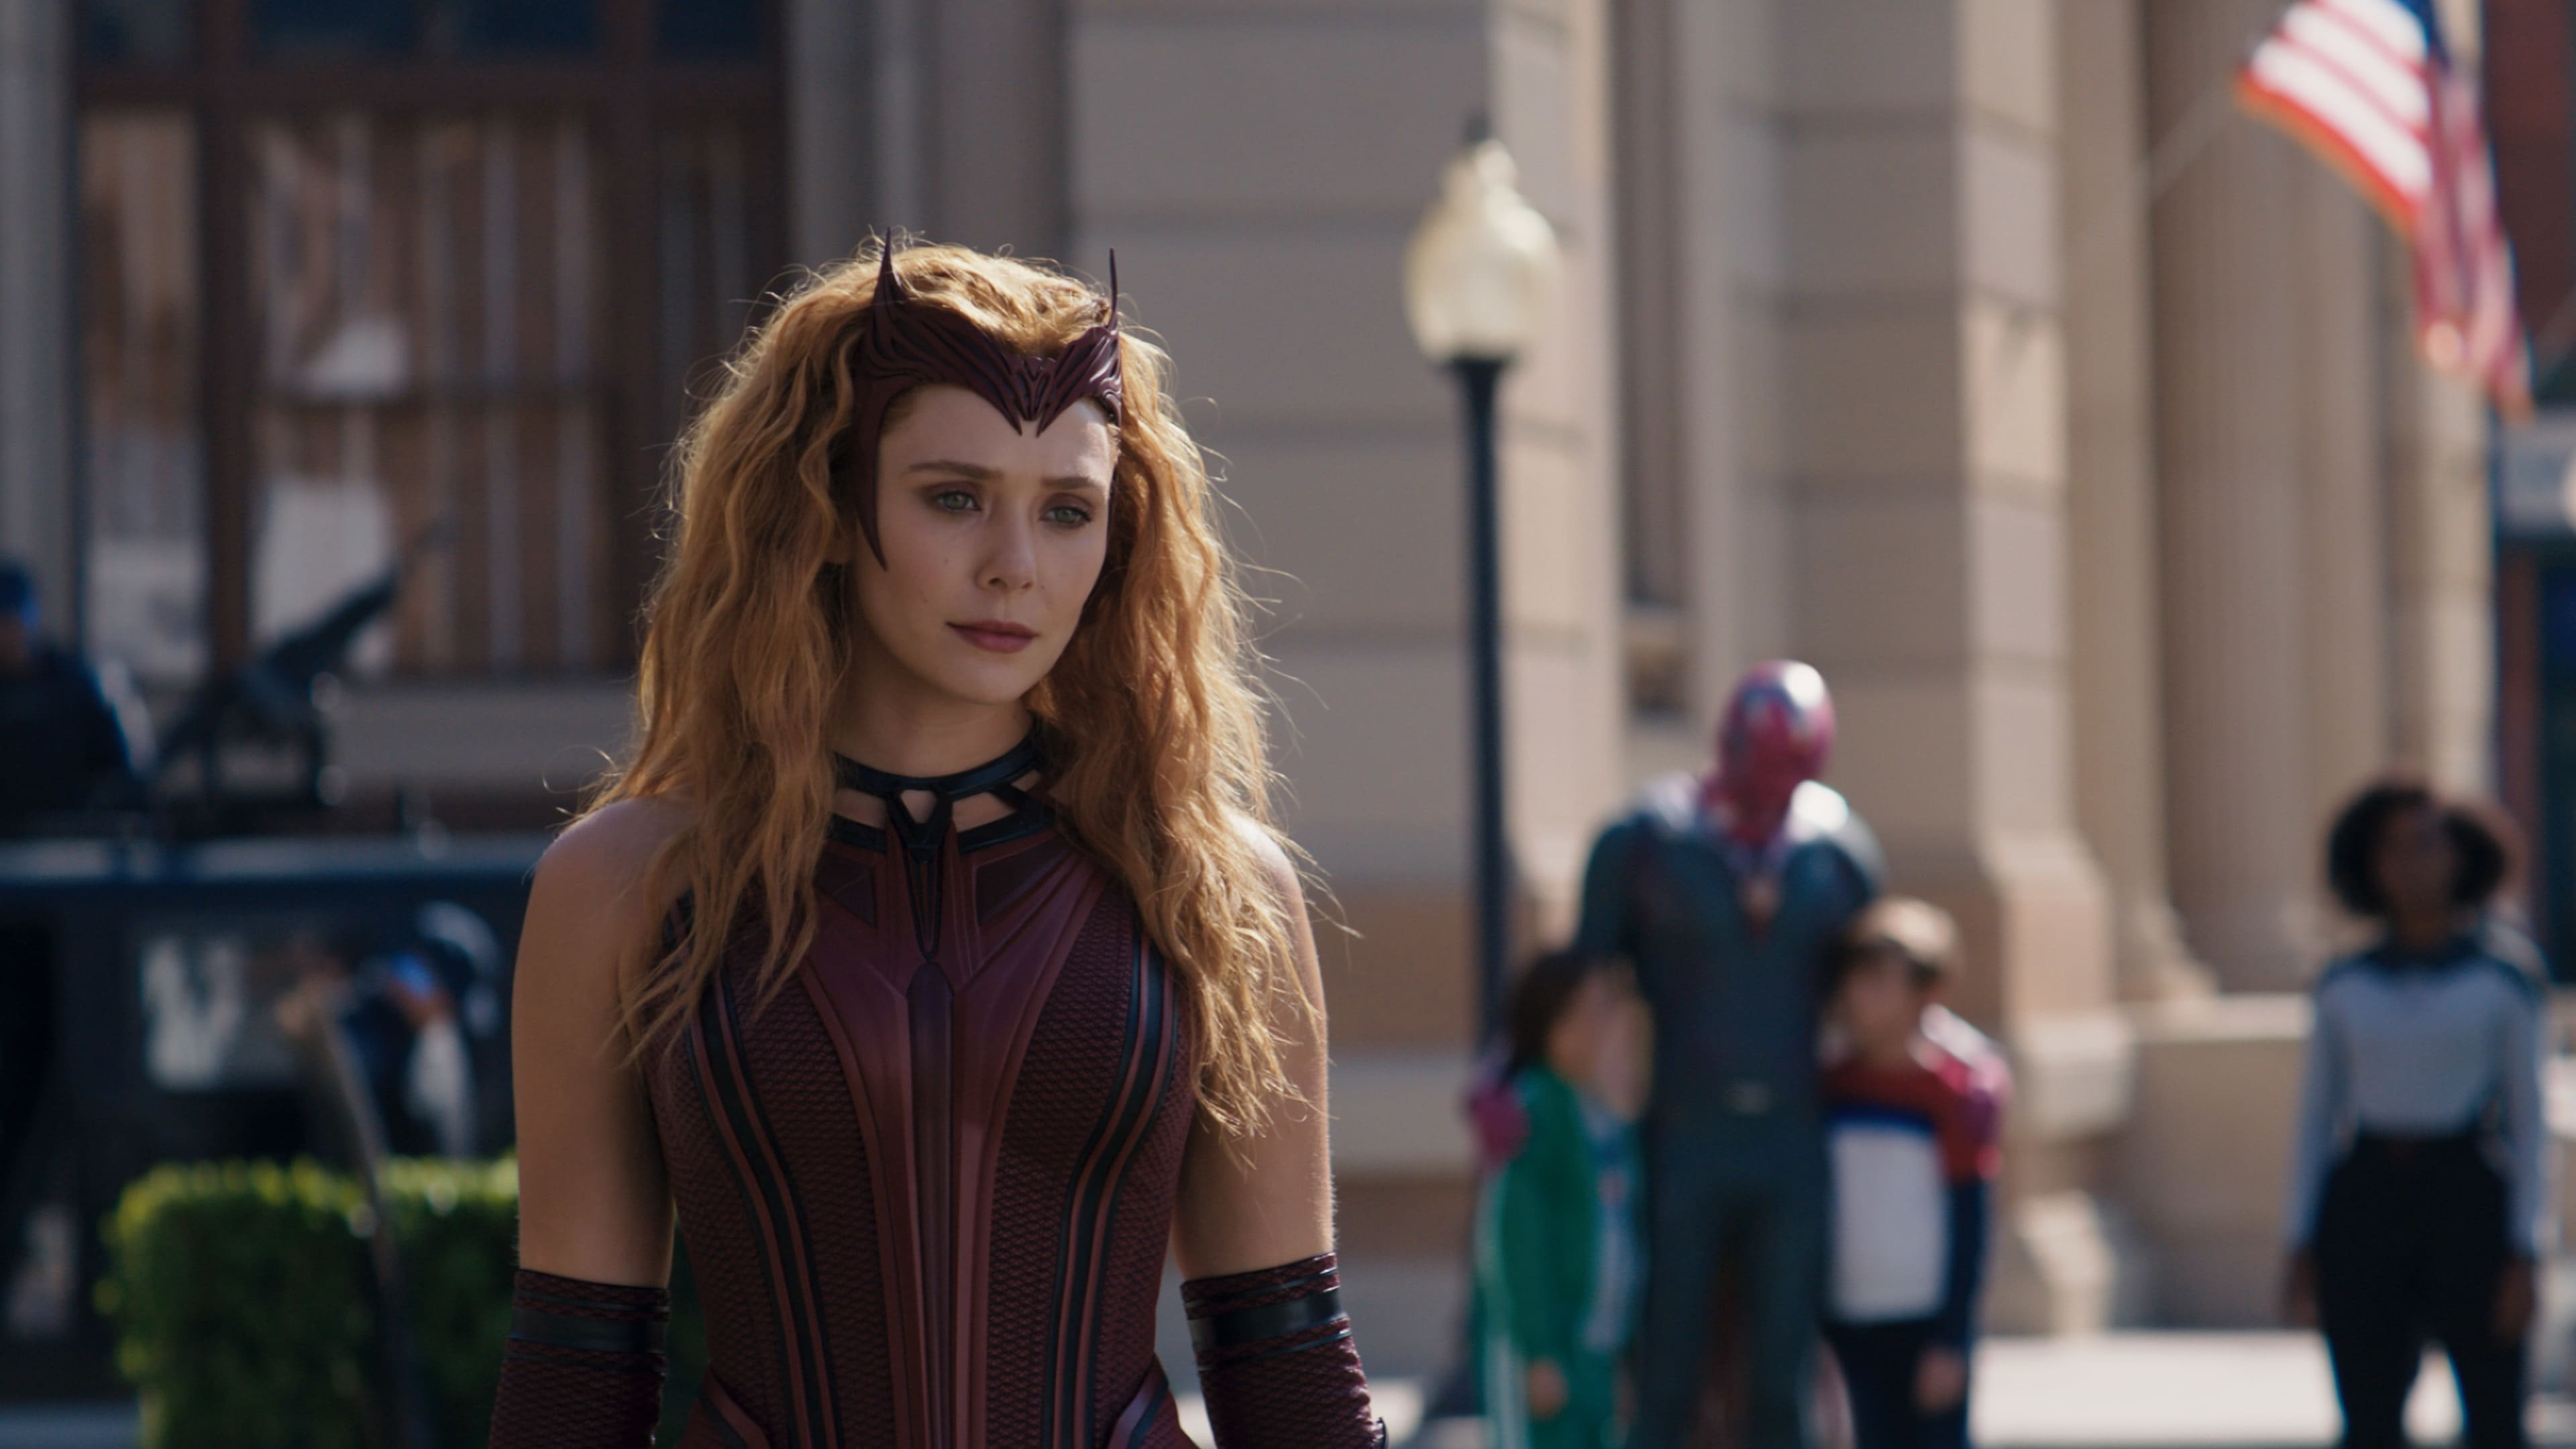 L-R): Scarlet Witch/Wanda Maximoff (Elizabeth Olsen), Tommy (Jett Klyne), Vision (Paul Bettany), Billy (Julian Hilliard) and Monica Rambeau (Teyonah Parris) in Marvel Studios' WANDAVISION exclusively on Disney+. Photo courtesy of Marvel Studios. ©Marvel Studios 2021. All Rights Reserved.